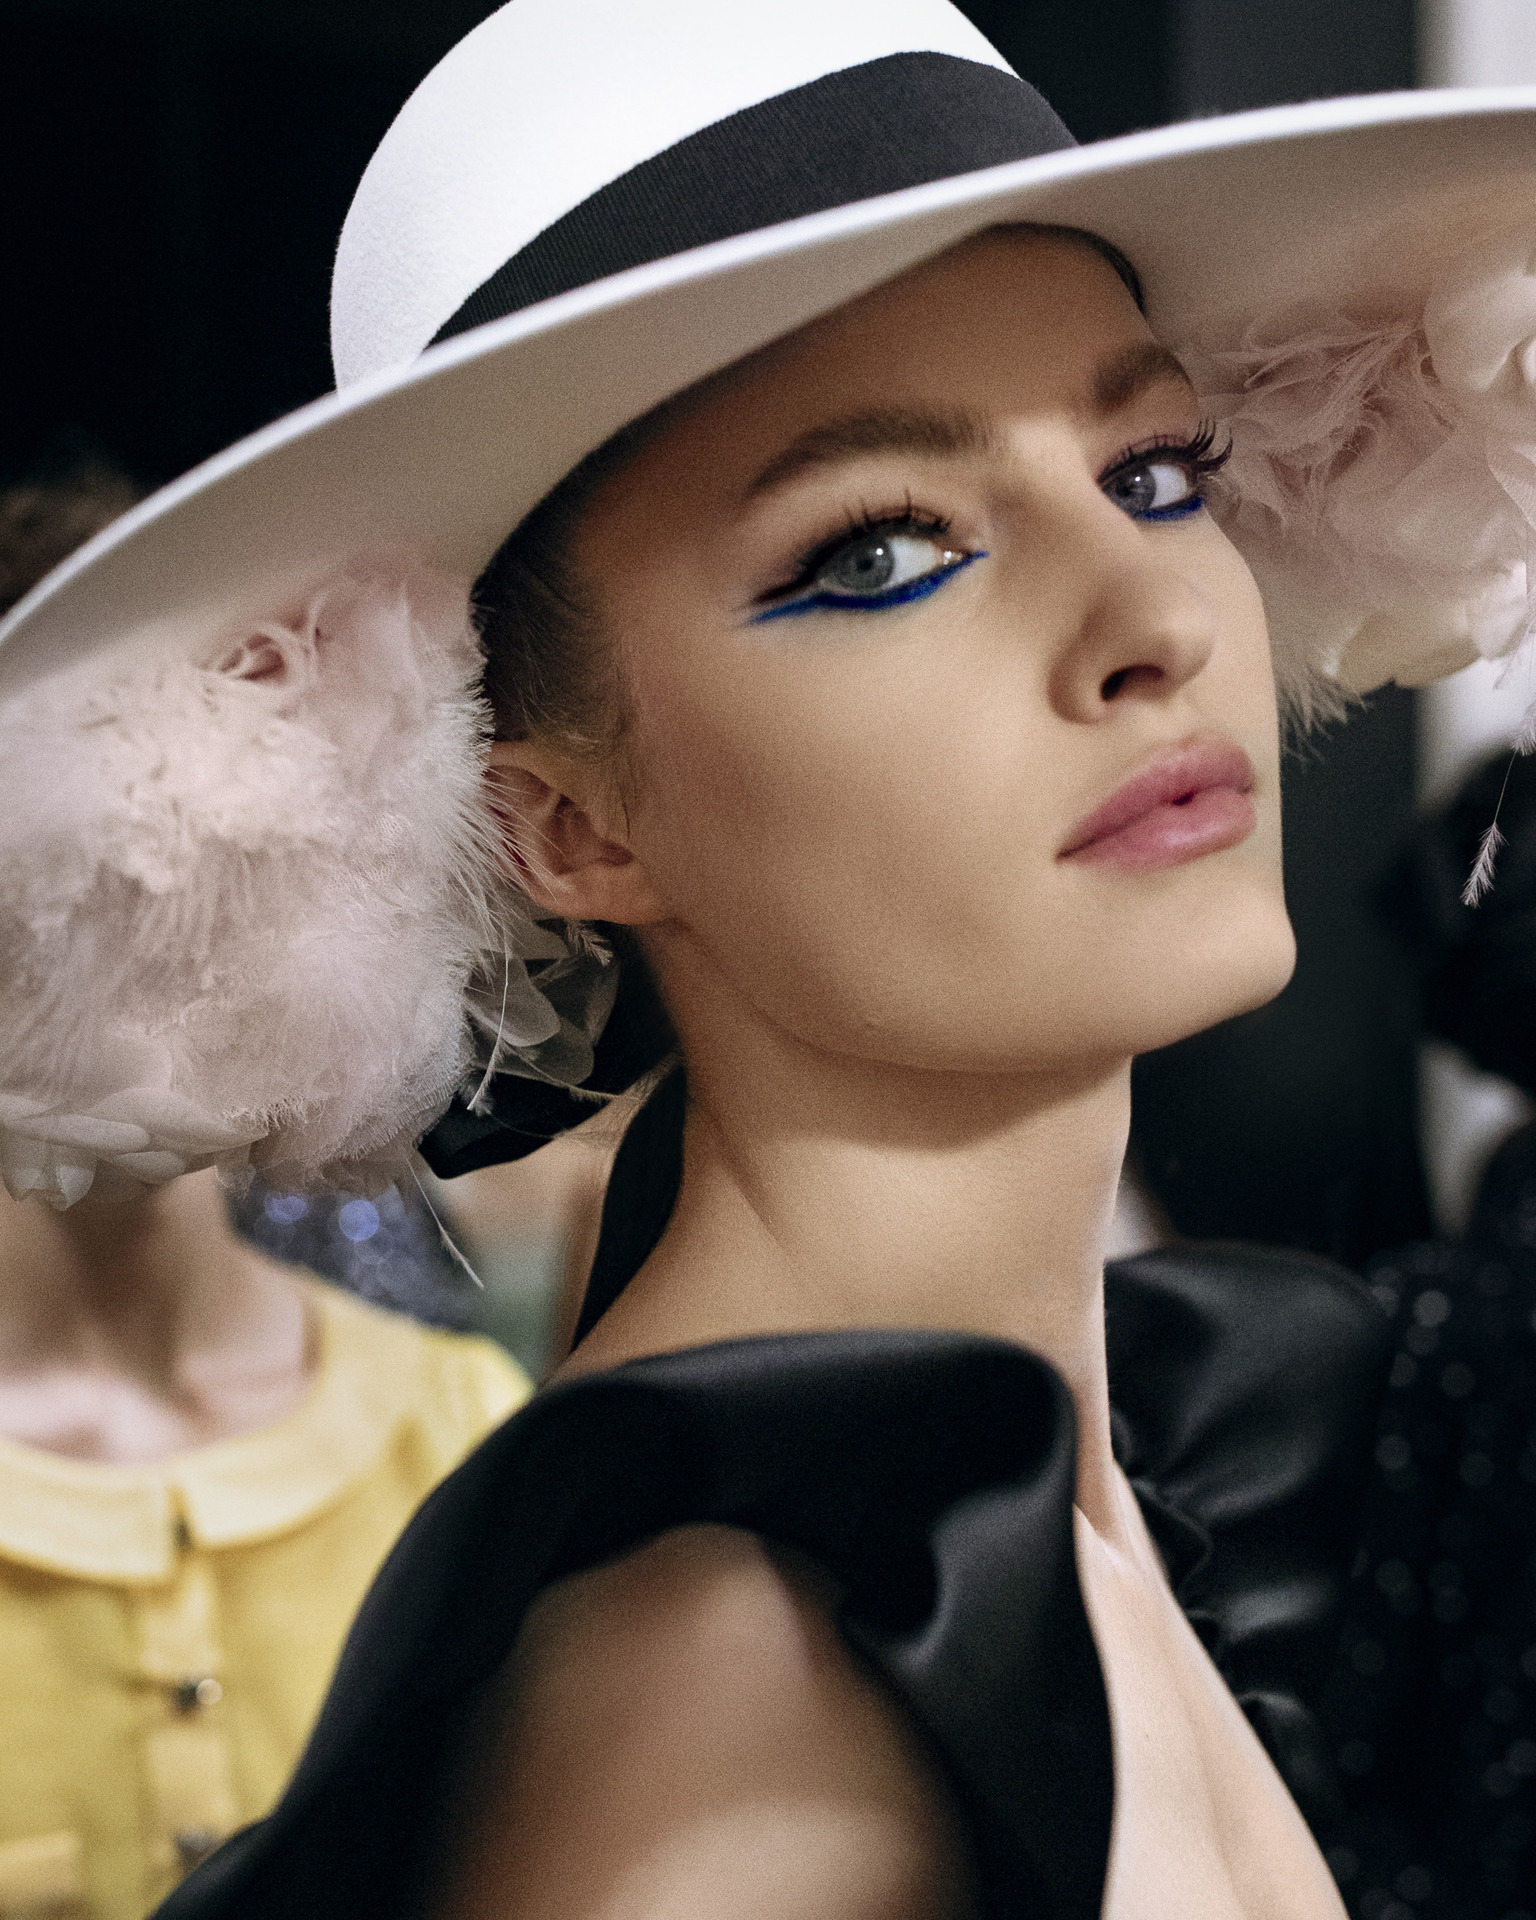 Fall-Winter 2021/22 Haute Couture Collection CHANEL Backstage CHANEL Makeup © CHANEL 2021